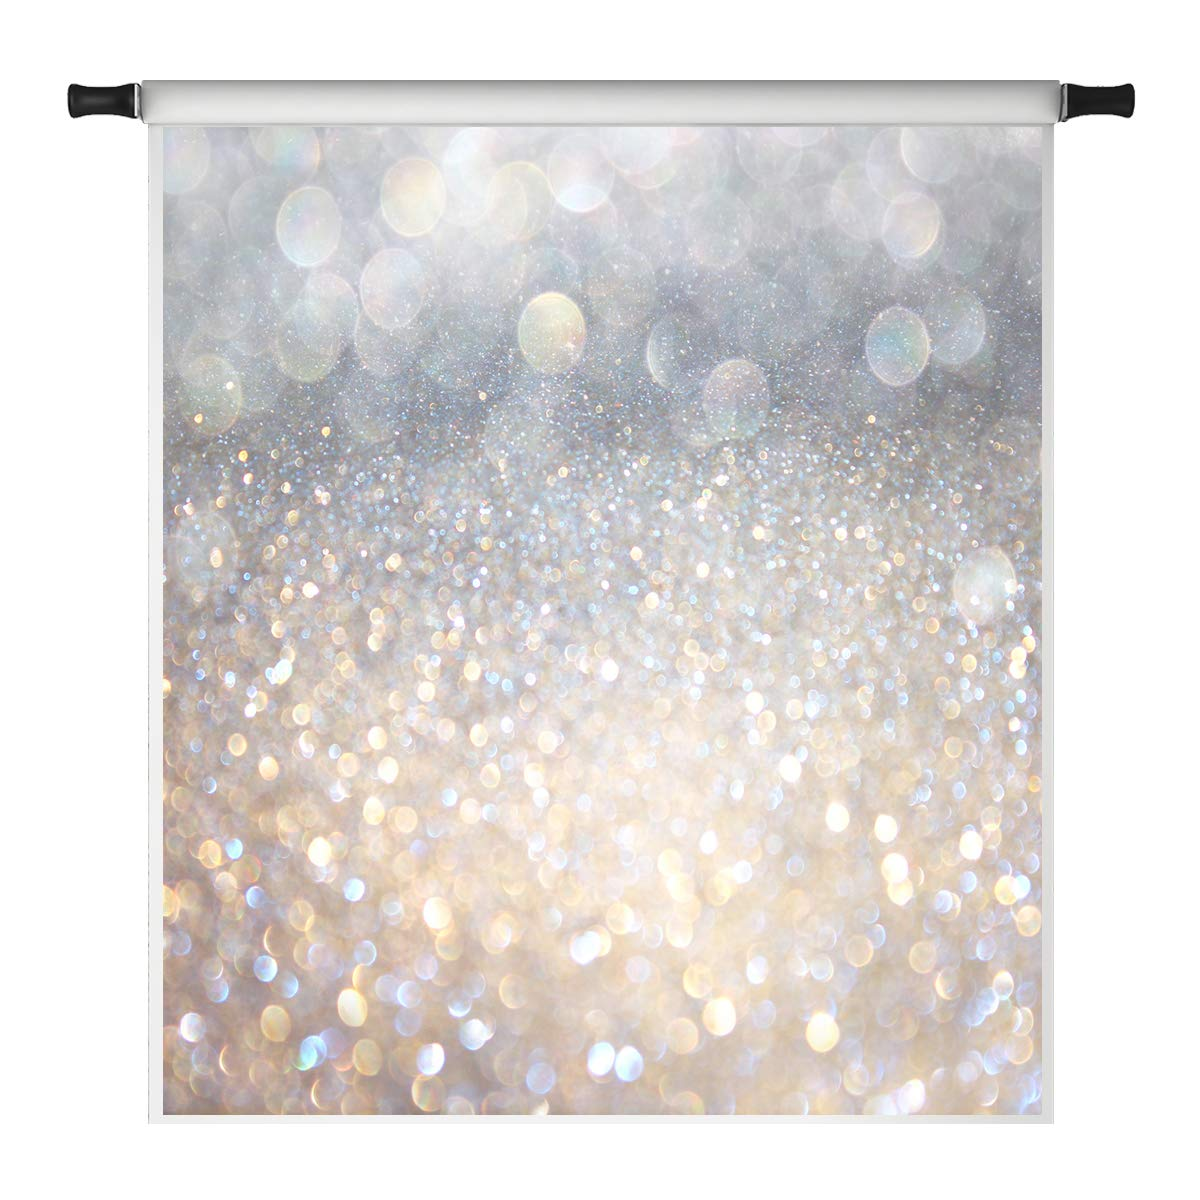 Kate 8x8ft Bokeh Photo Backdrop Shining Background Party Decoration Glitter Backdrops Microfiber Photography Background by Kate